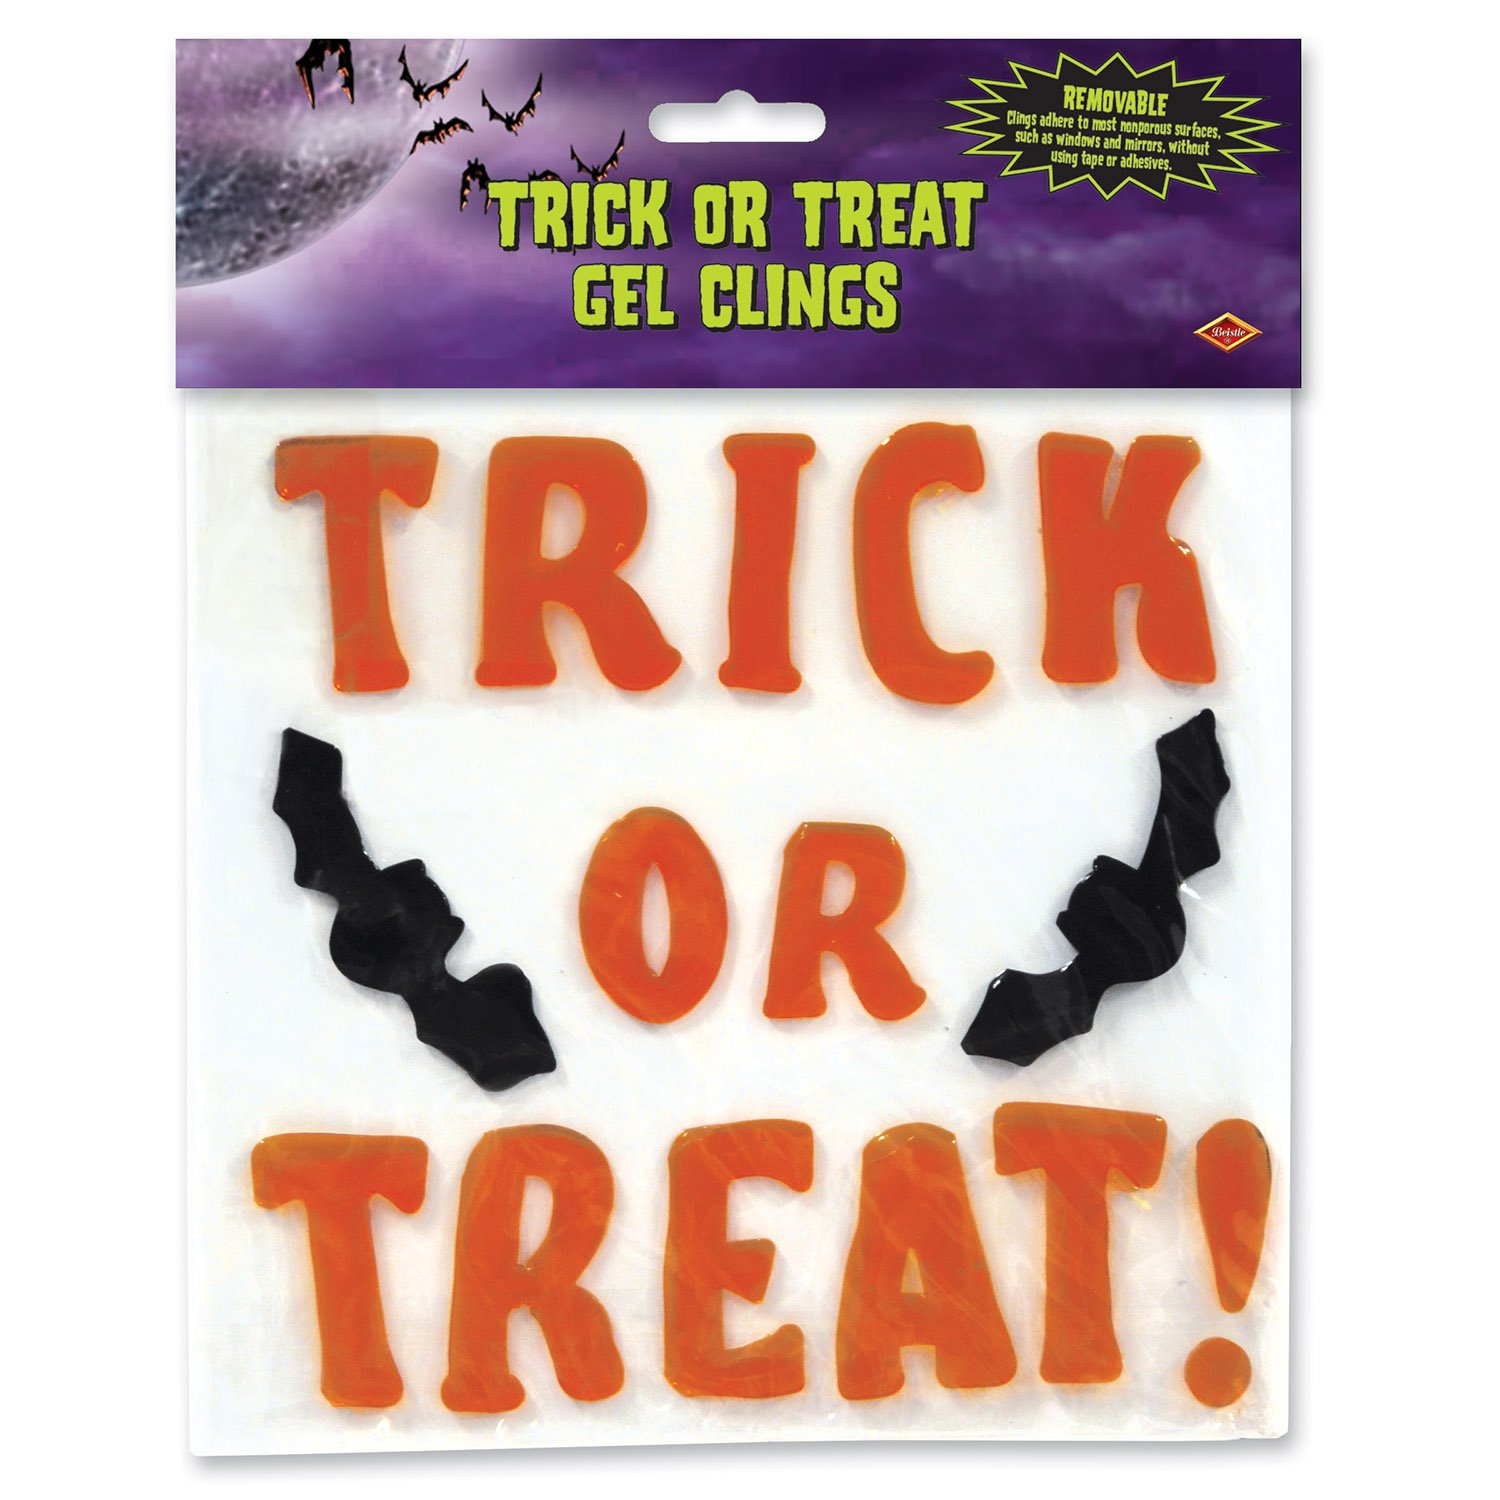 Beistle Trick or Treat Gel Clings 7-1//2-Inch by 7-1//2-Inch The Beistle Company 01917